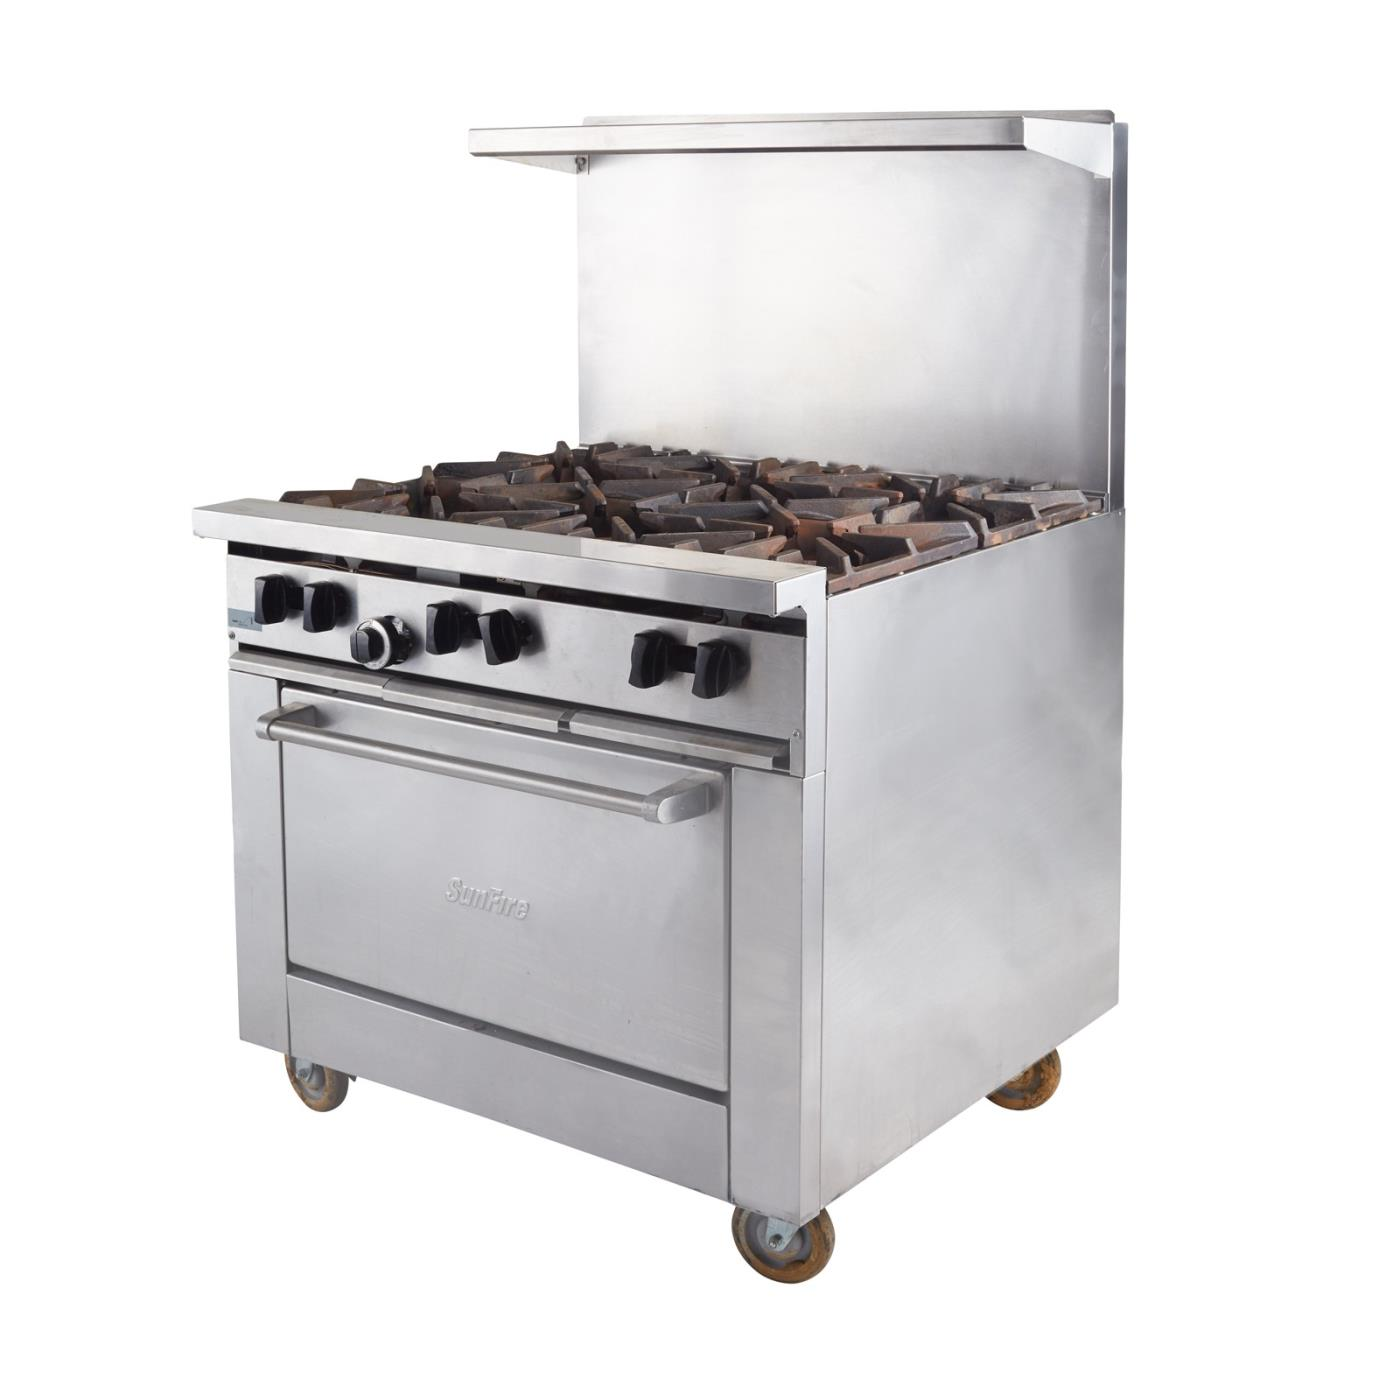 Propane Stove - Oven With 6 Burners